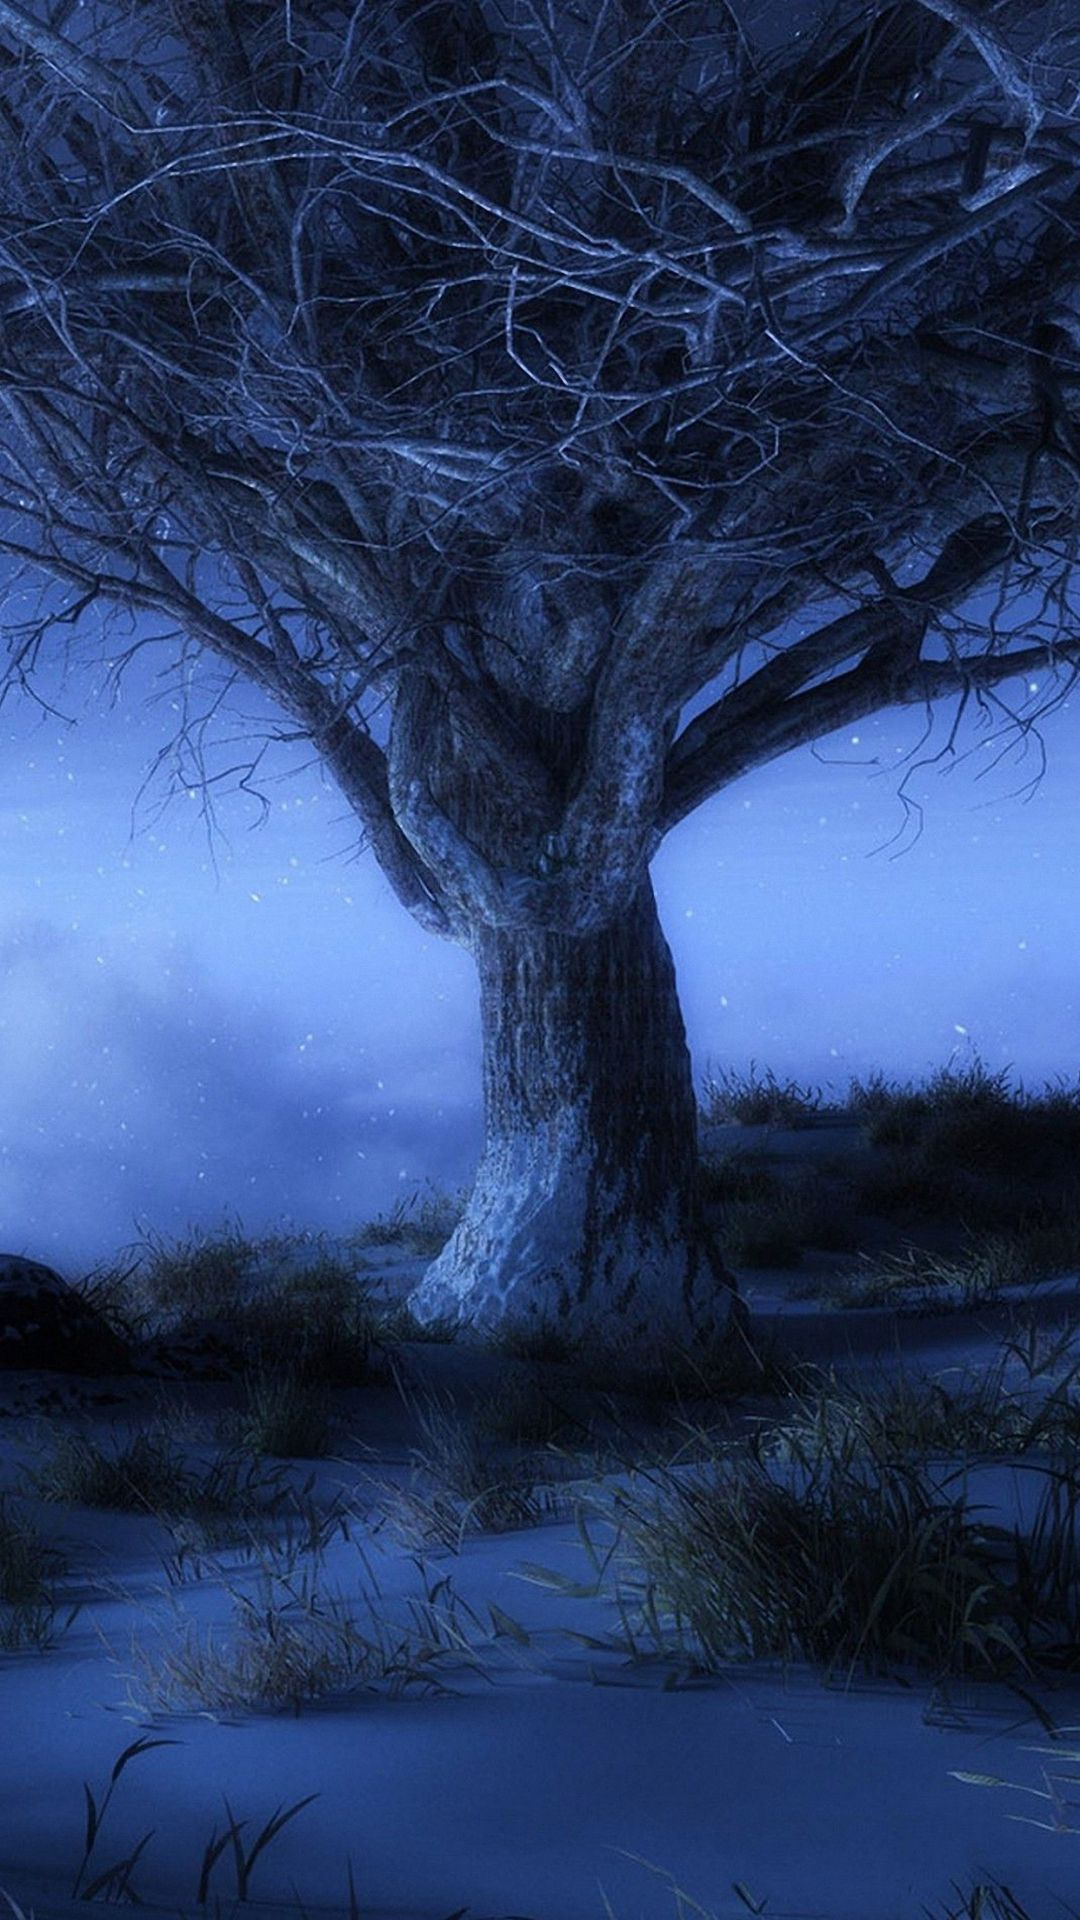 Hd Nature Night Old Tree Iphone 6 6s 6s Plus Wallpapers Nature Mobile Backgrounds Download Retina Wallpaper Samsung Galaxy Wallpaper Iphone 6 Wallpaper